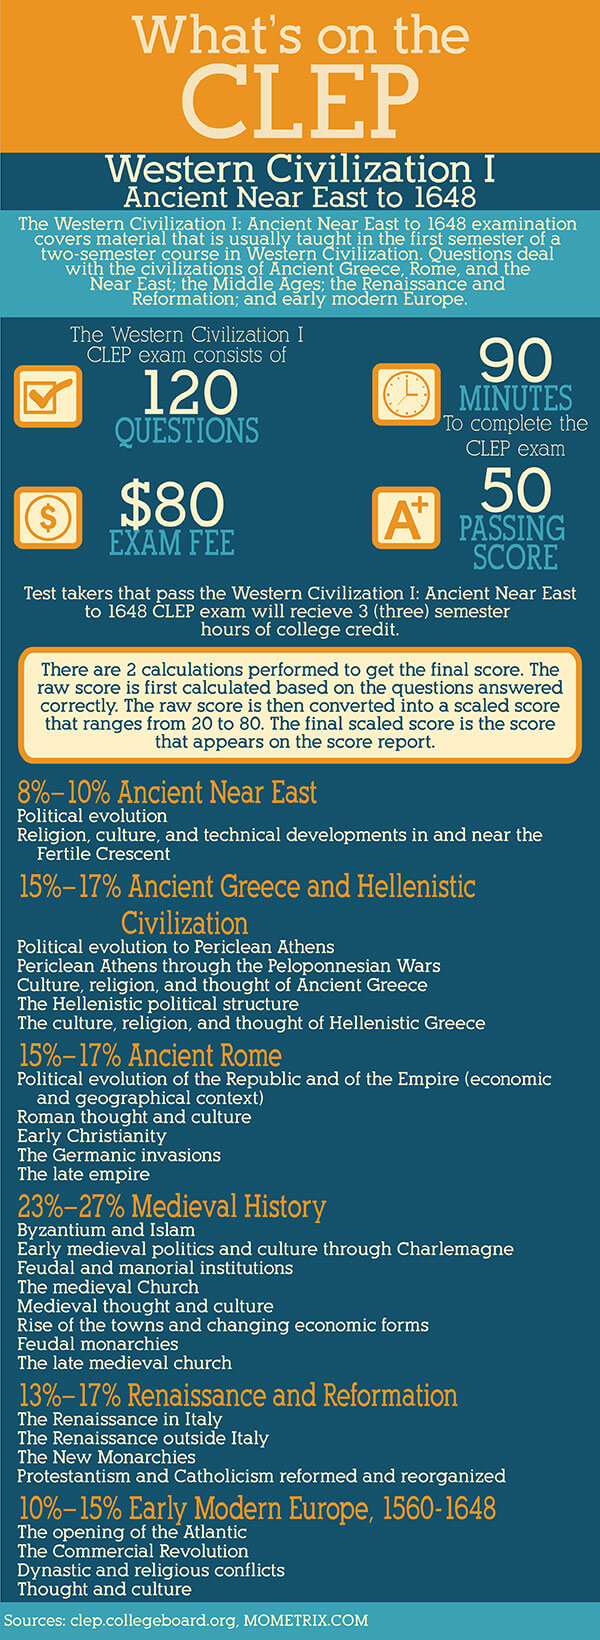 Infographic explaining western civilization I CLEP exam